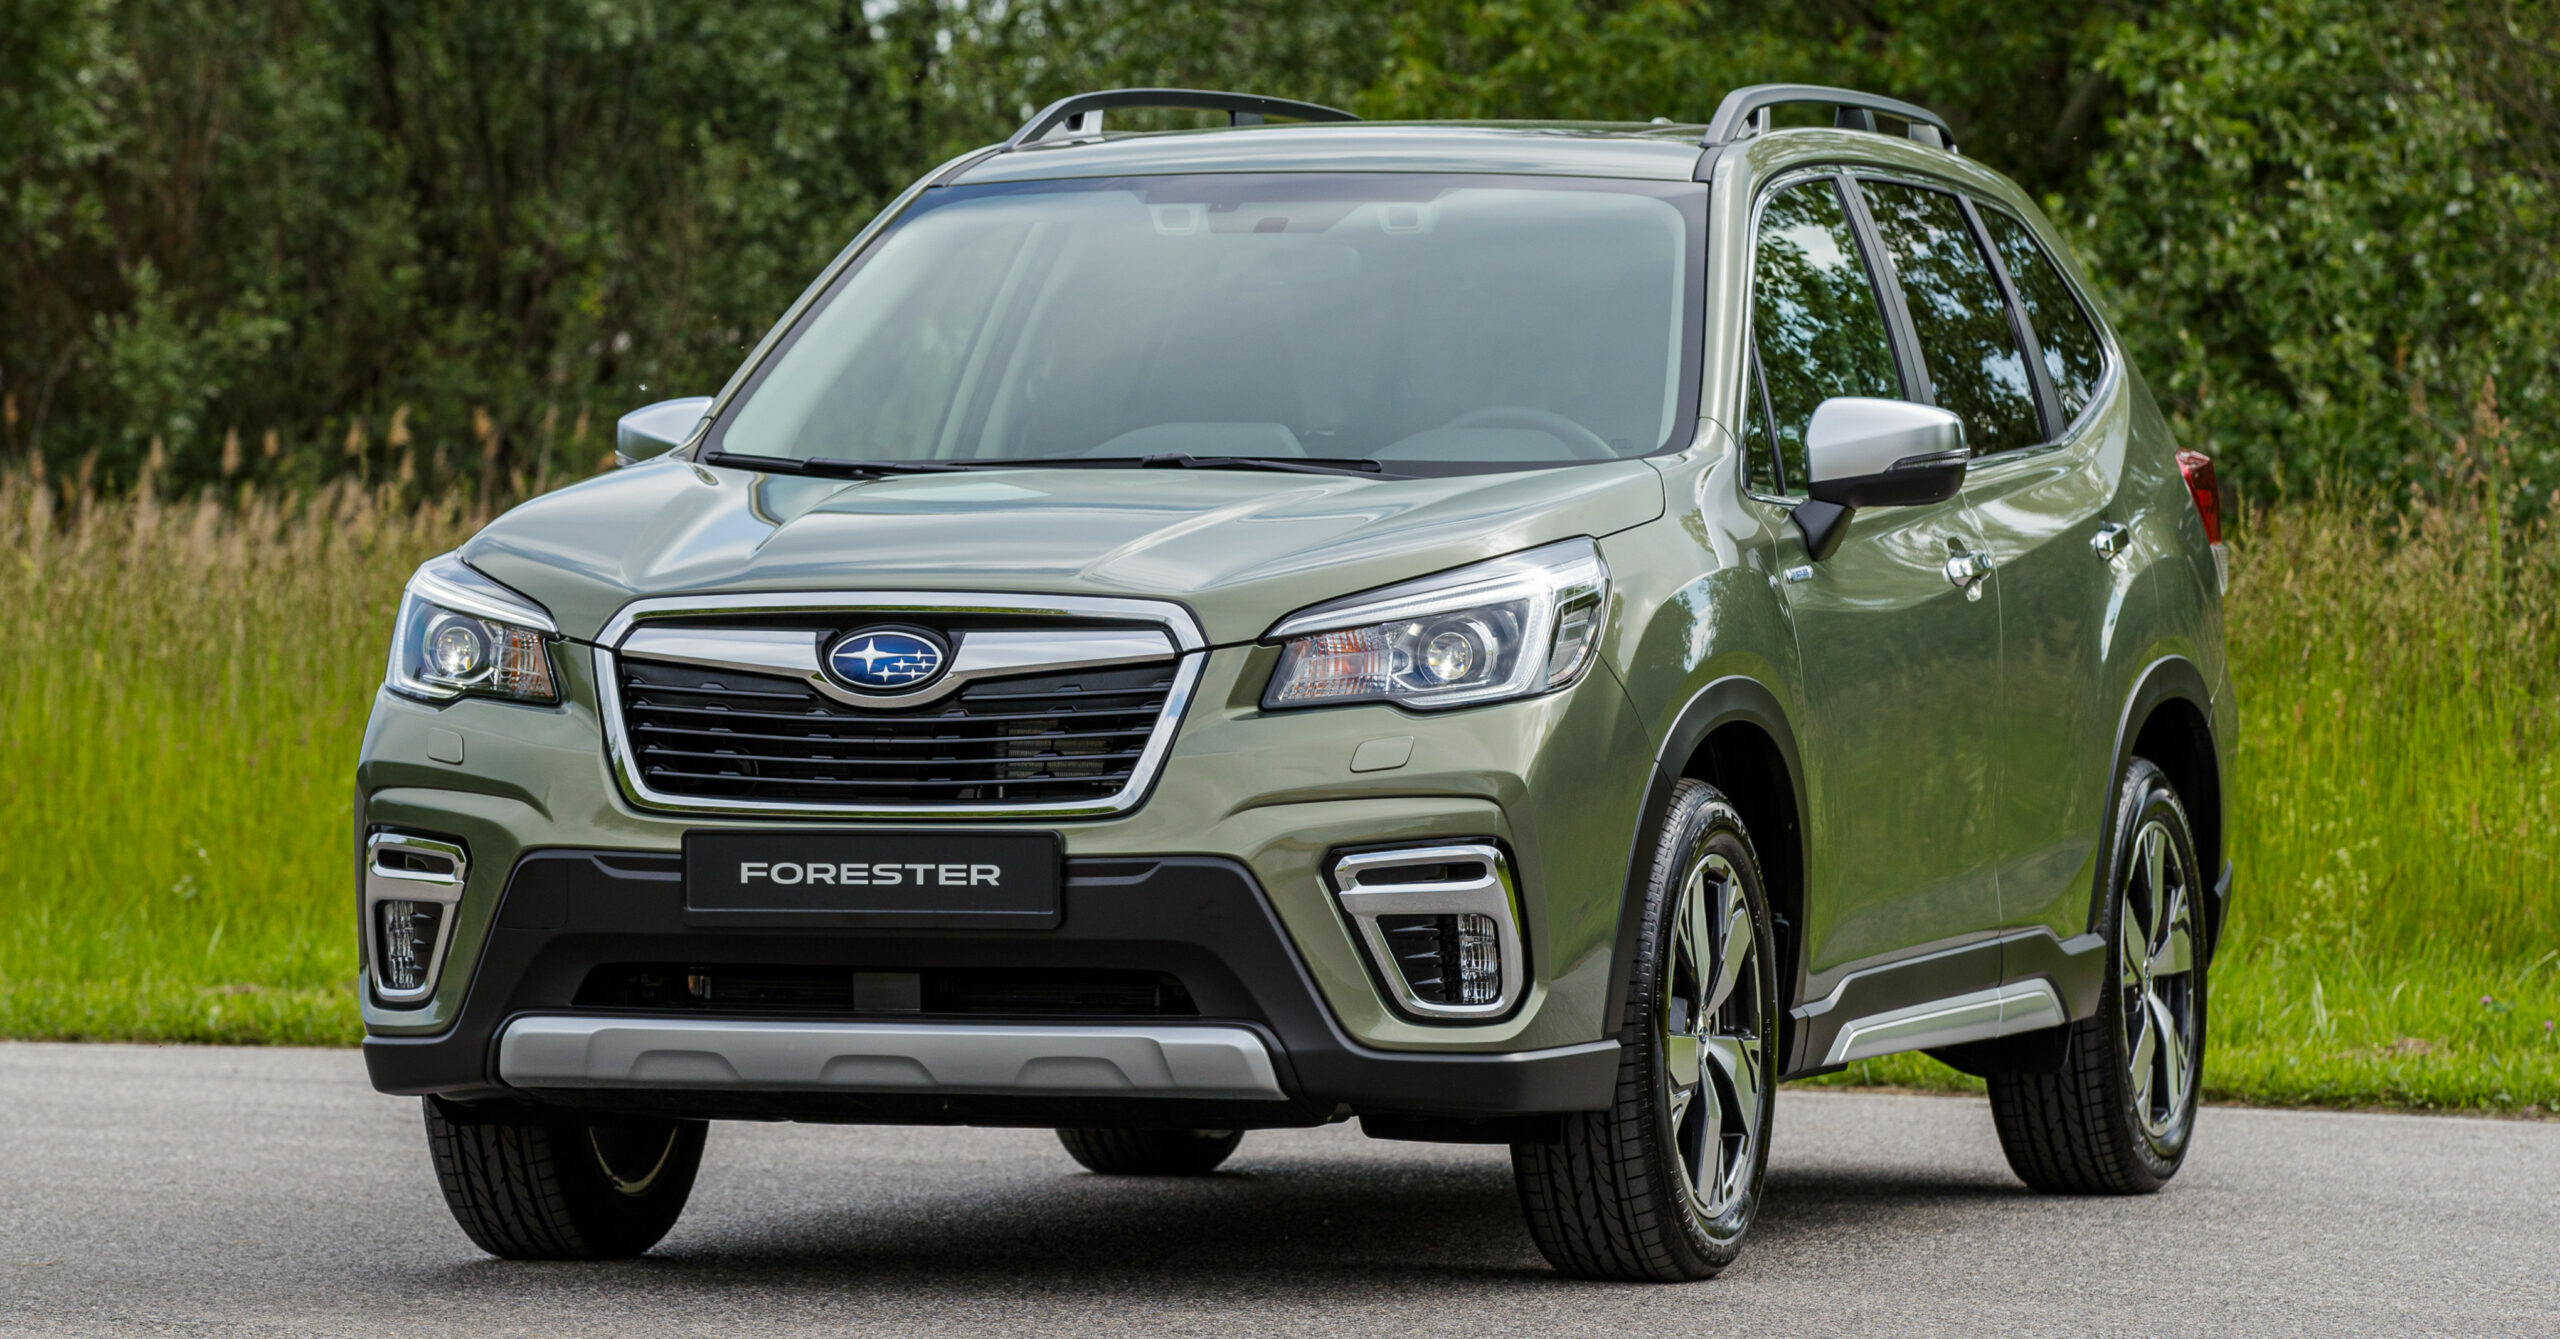 7 Subaru Forester e-Boxer on sale in the UK - 7.7L hybrid ...